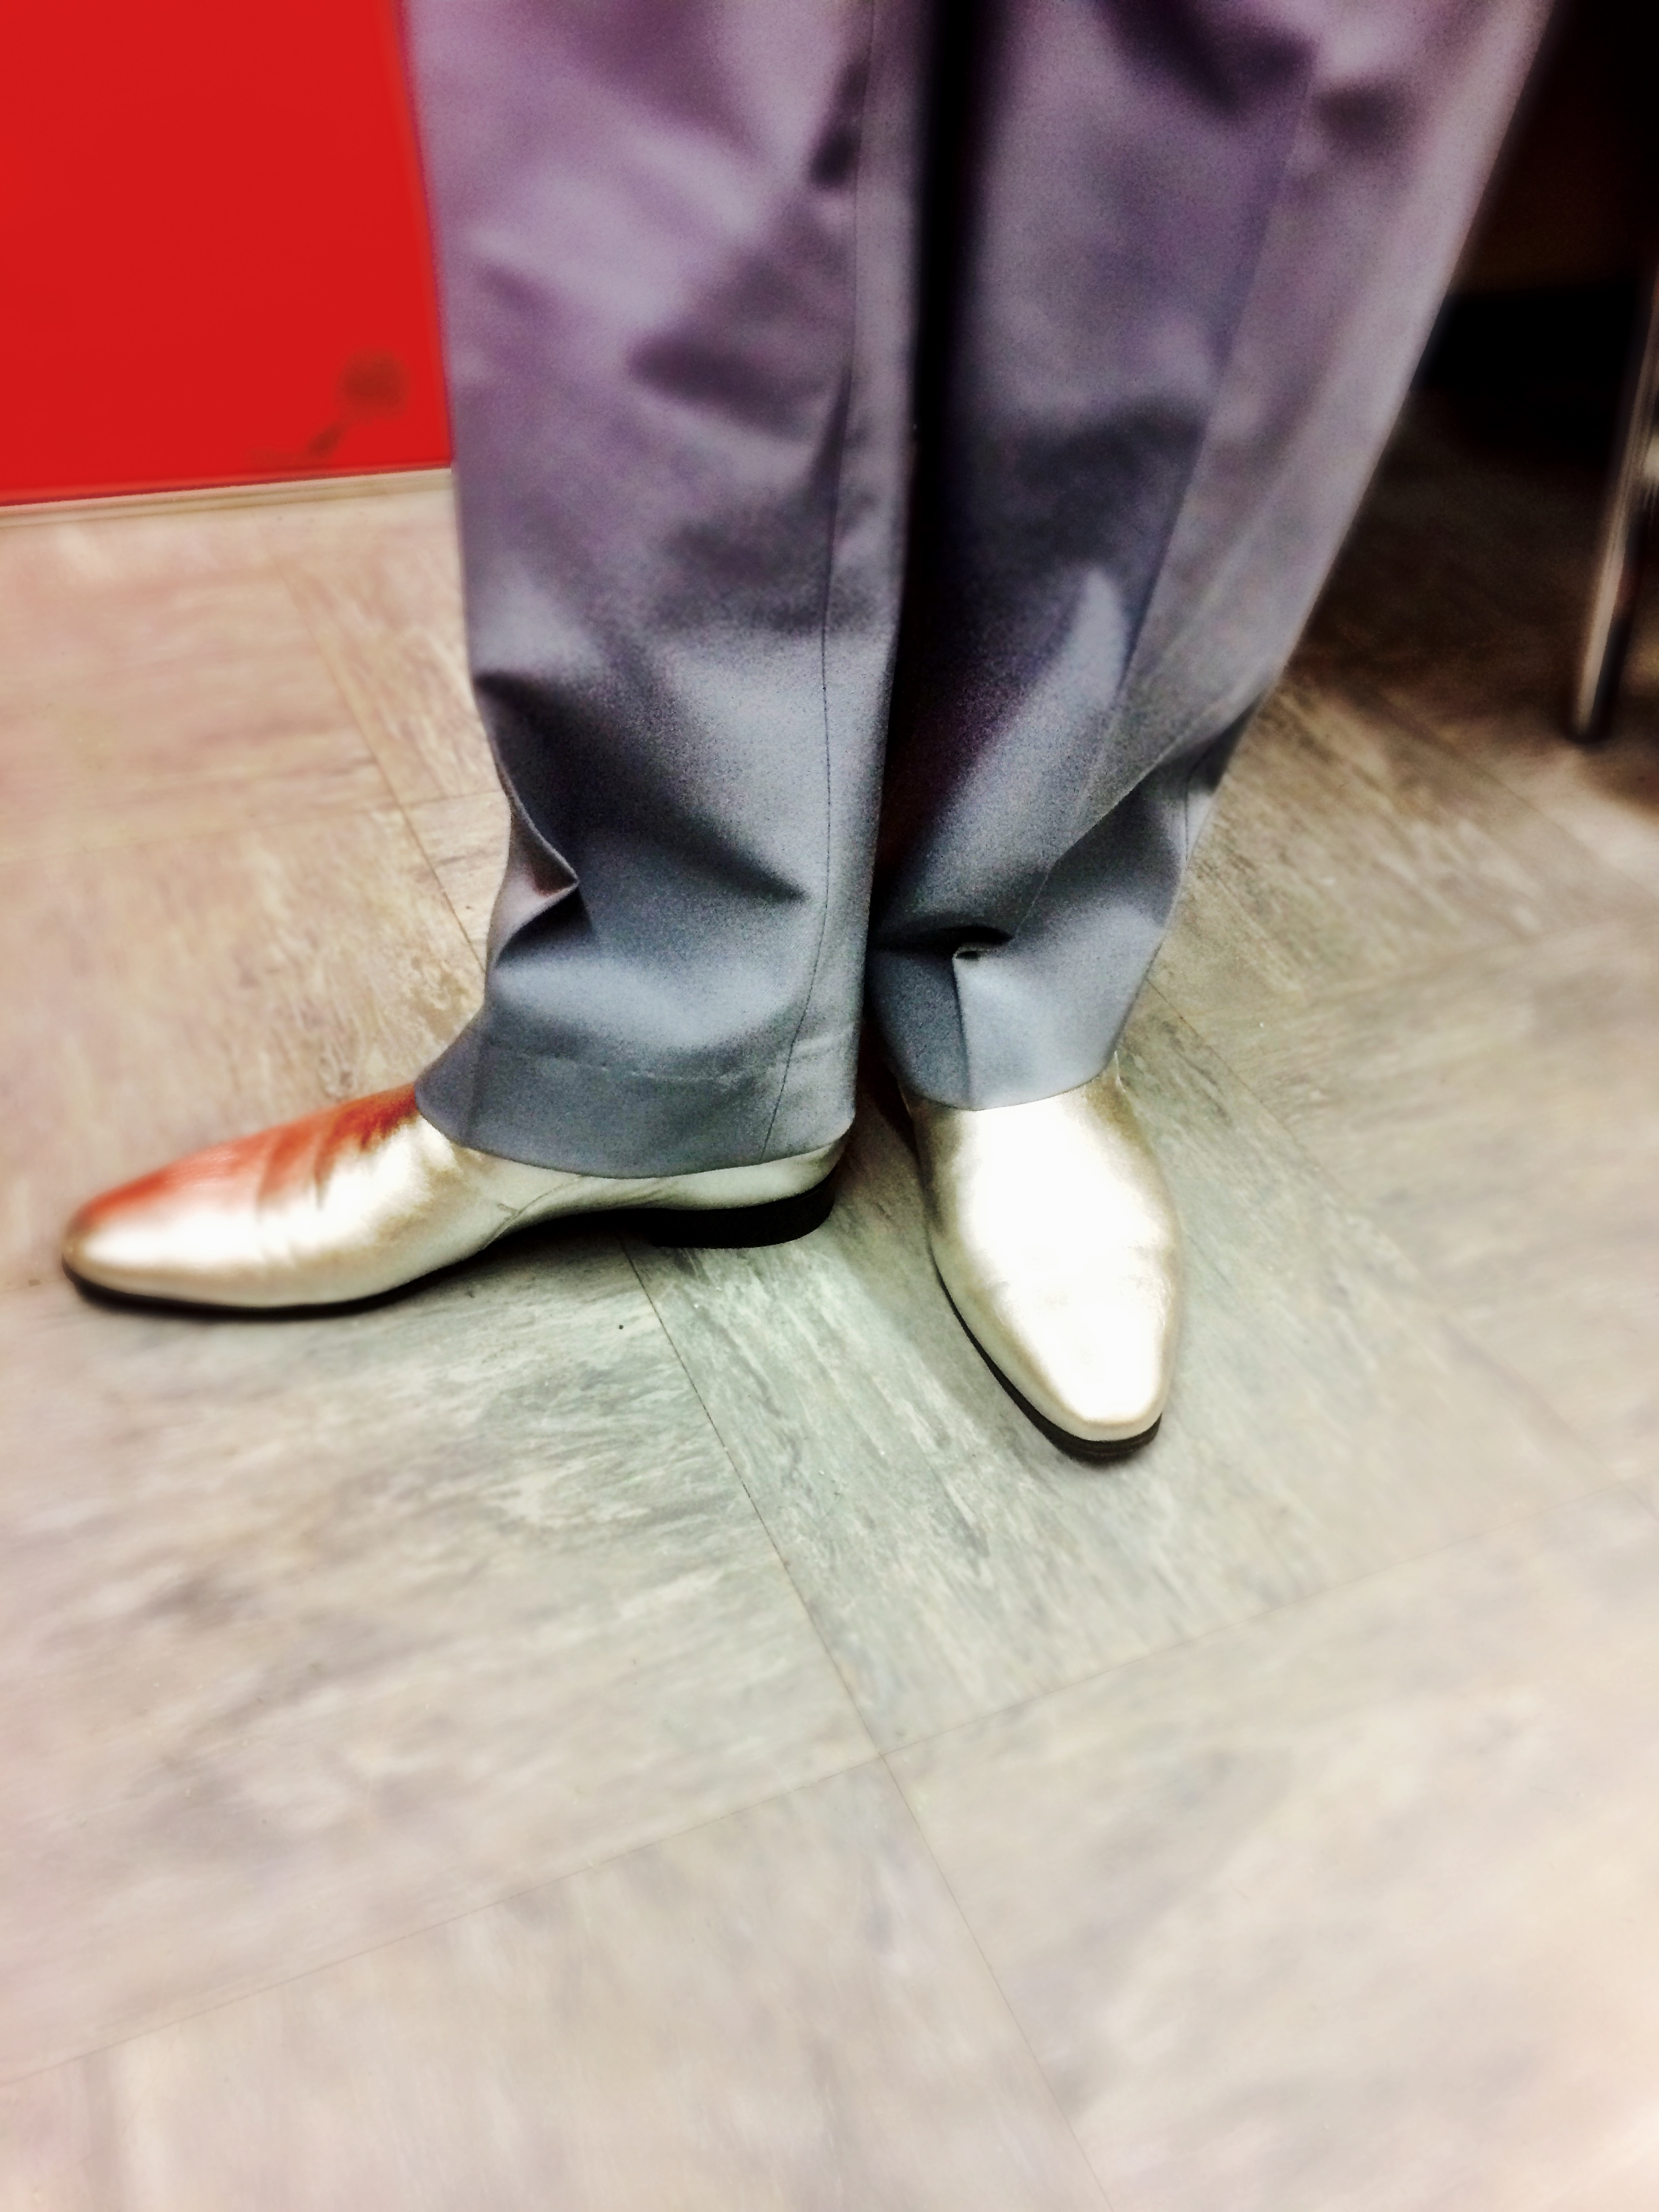 Jim's silver shoes